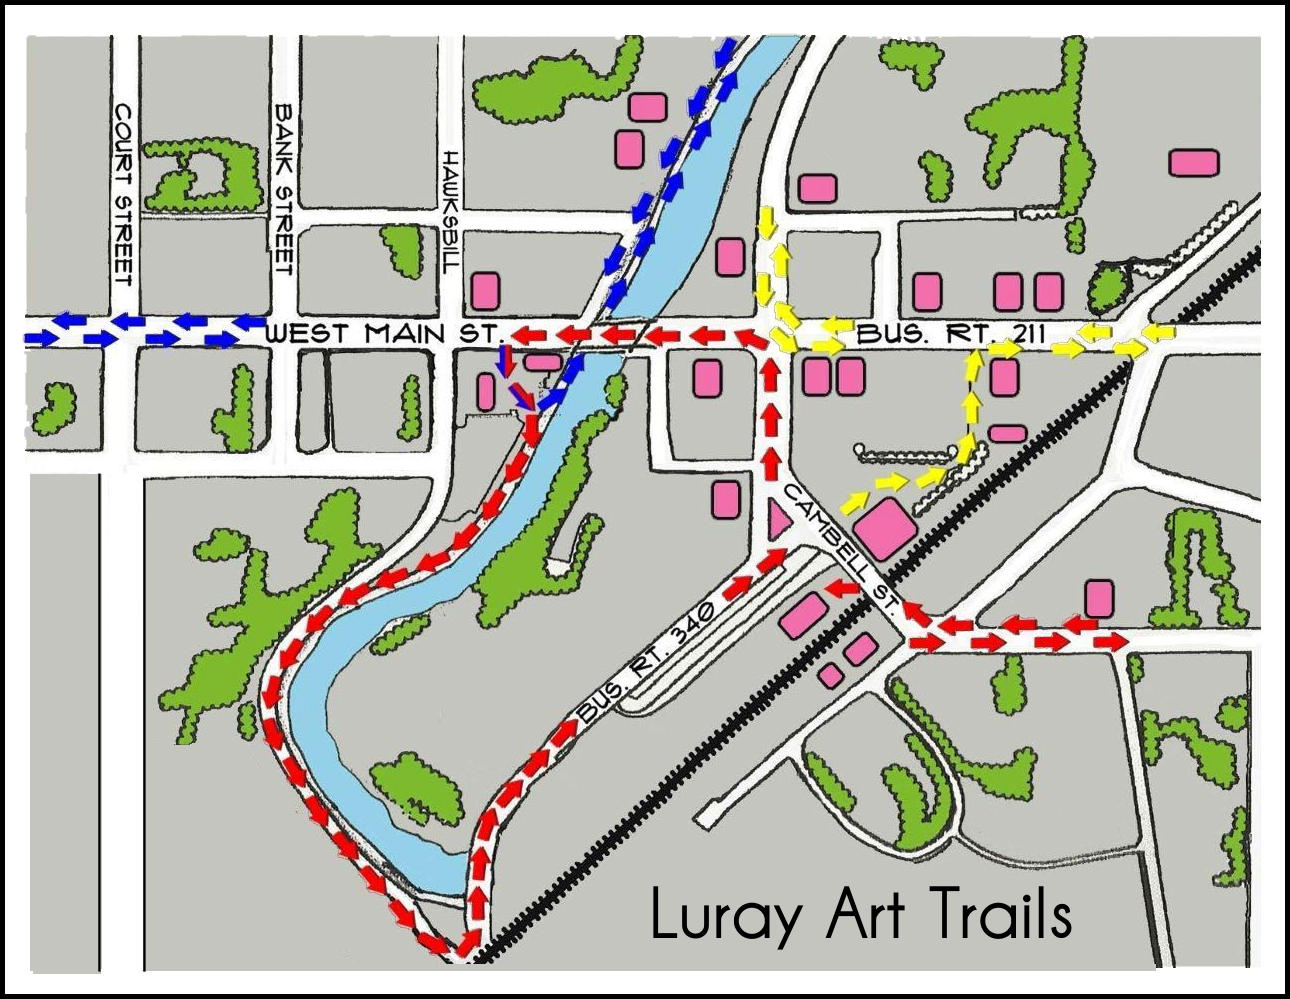 Luray Art Trails